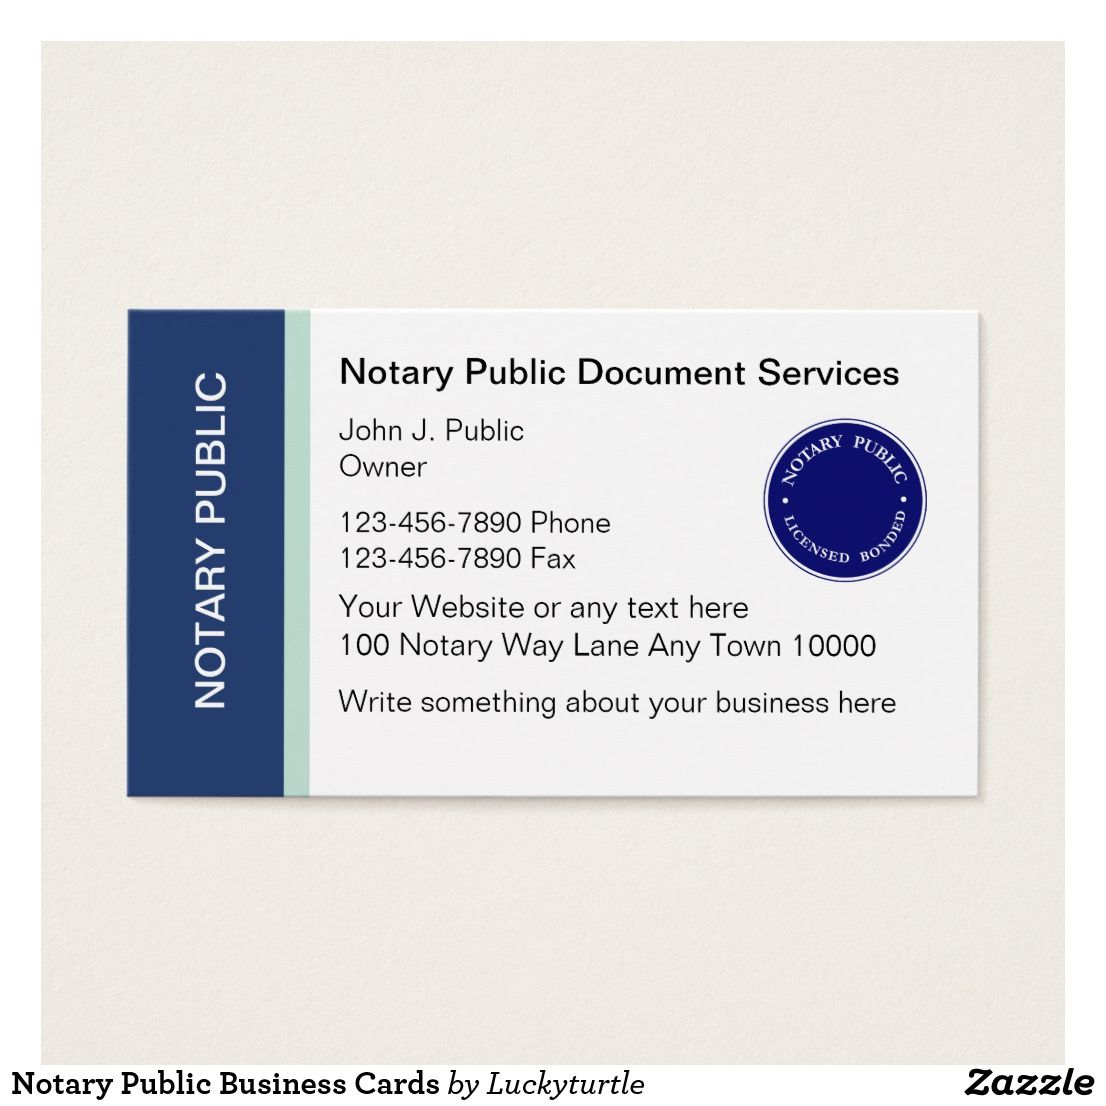 Pin by Business Cards on Notary Public Business Cards | Pinterest ...